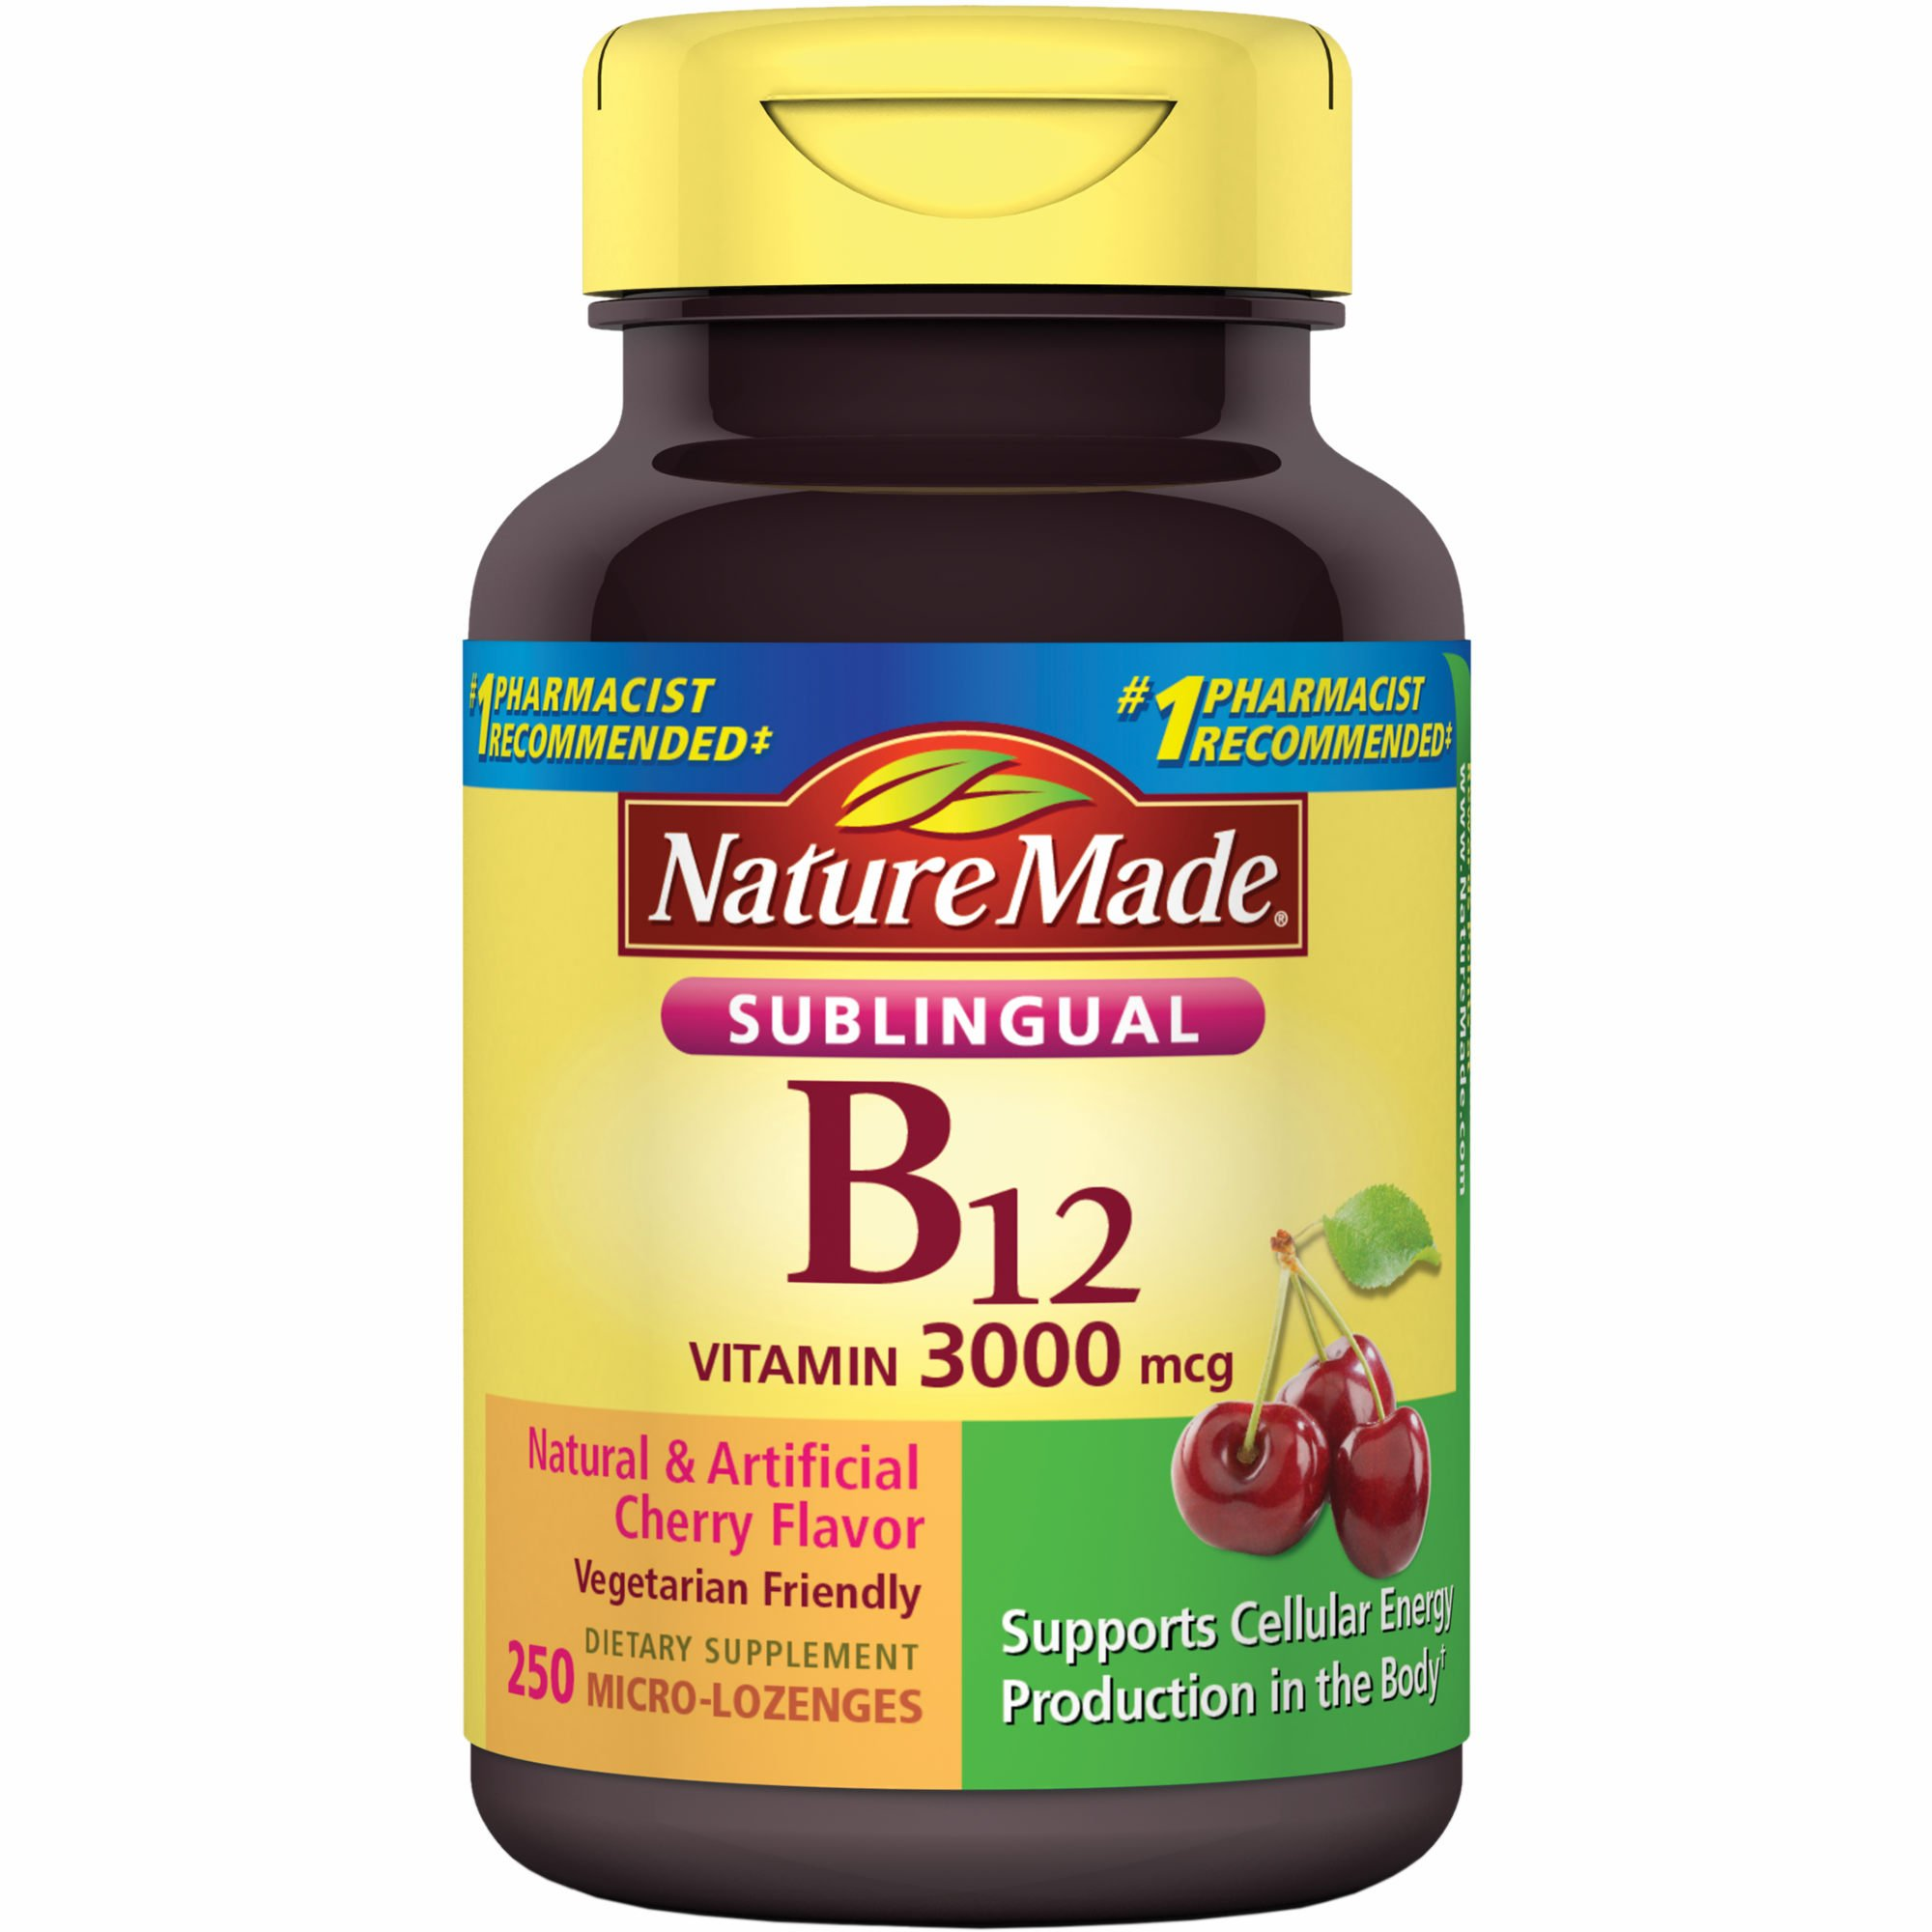 Nature Made Sublingual Vitamin B12 3000 mcg. Cherry Flavored Lozenges, 1 Pack, 250 Count …